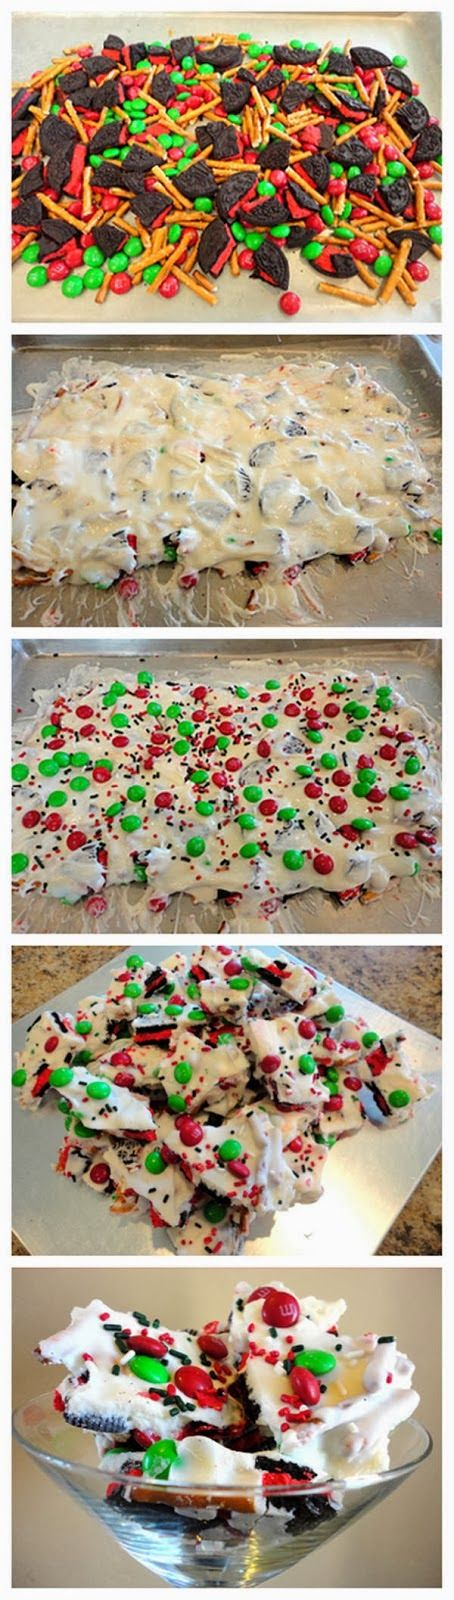 How To Christmas Cookie Bark- easy and looks delicious...who wouldnt like this?! Check out more pics like this! Visit: http://foodloverz.net/